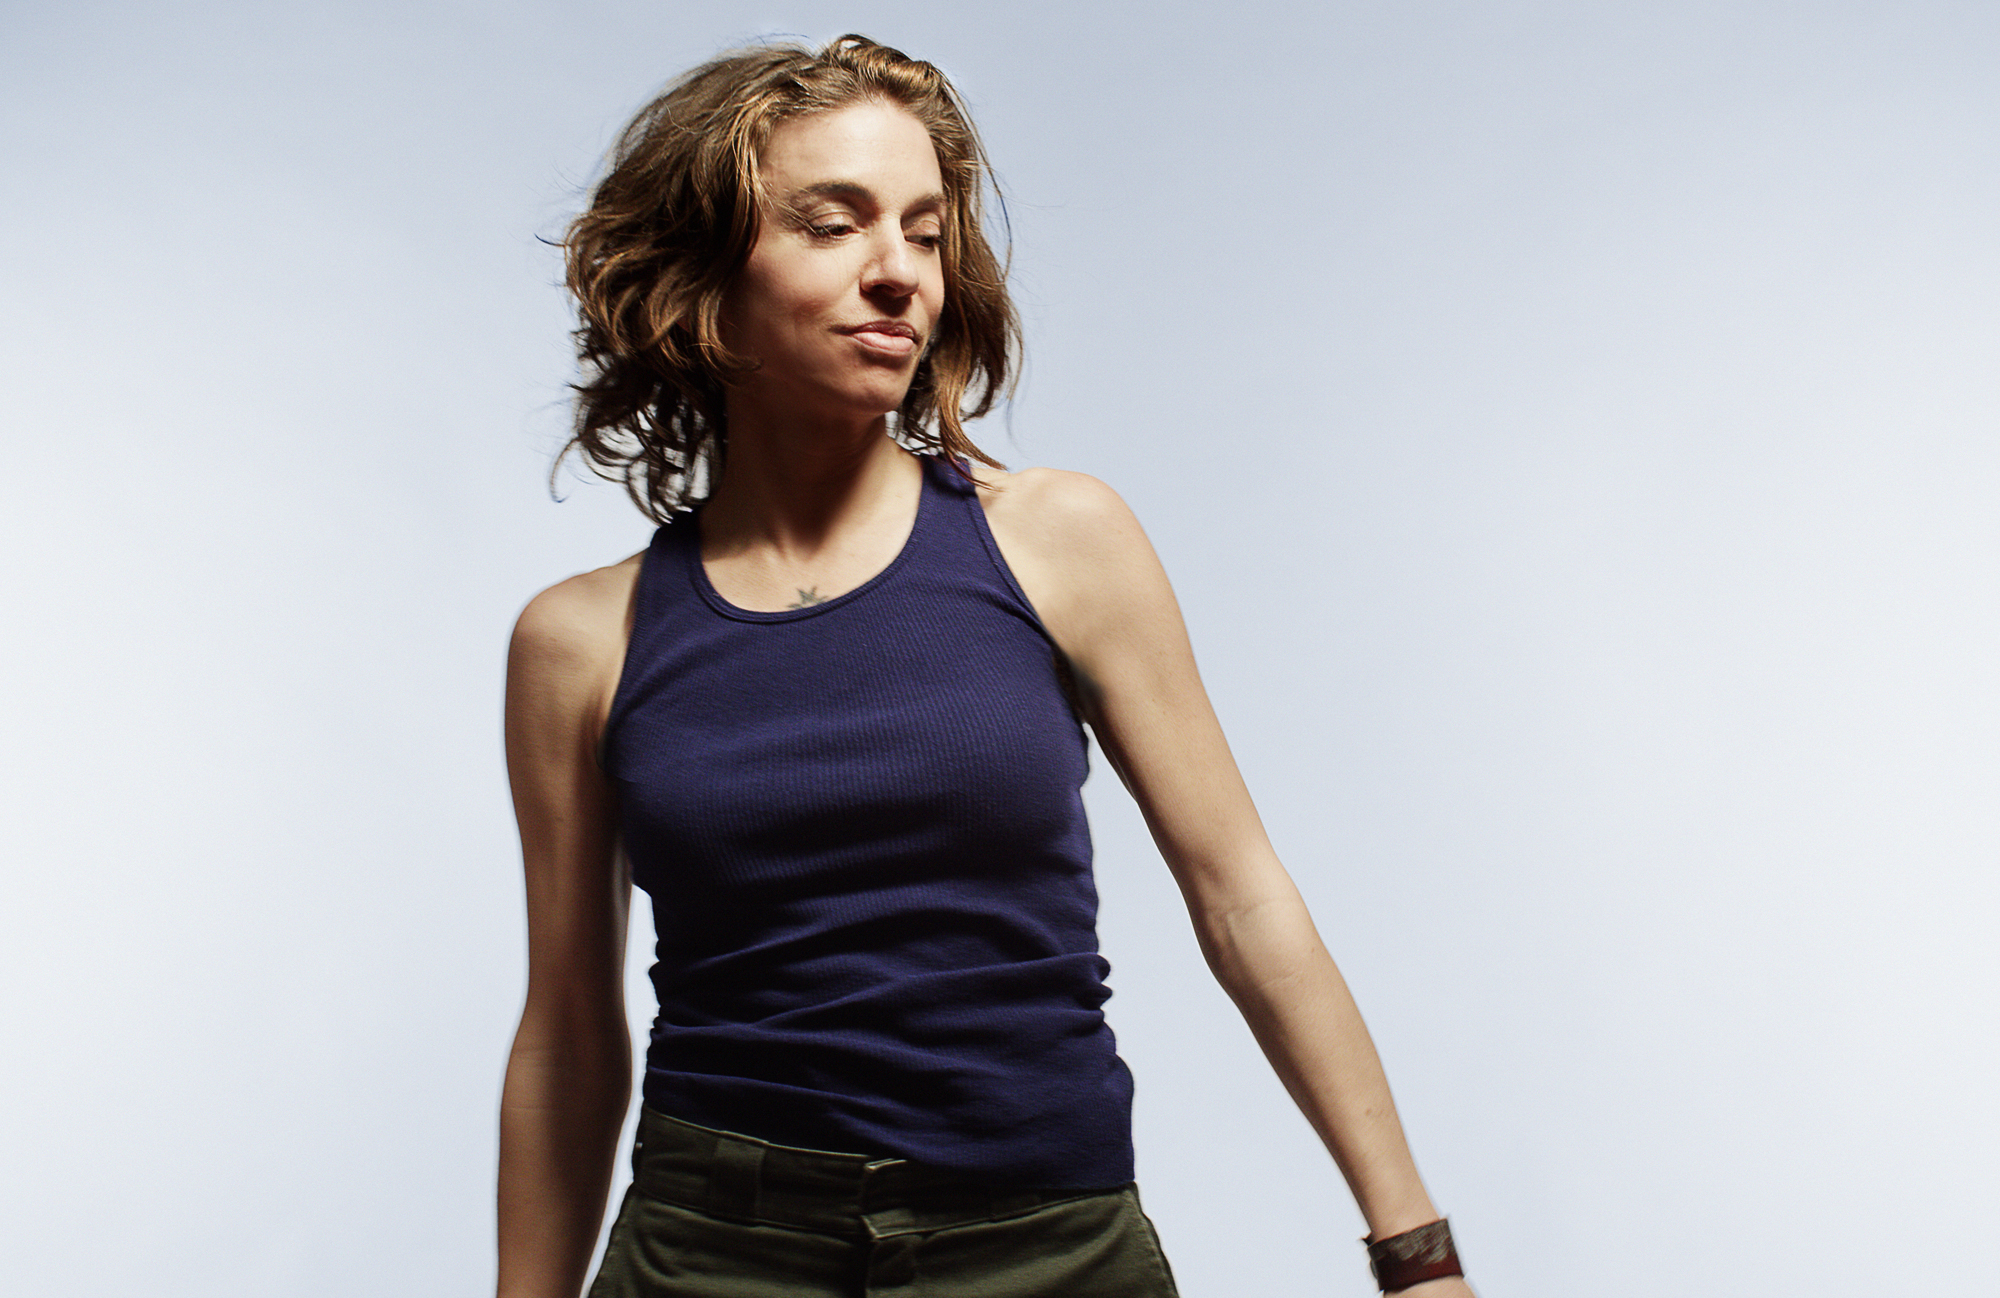 Ani DiFranco - This artist performing exclusively as part of the collective